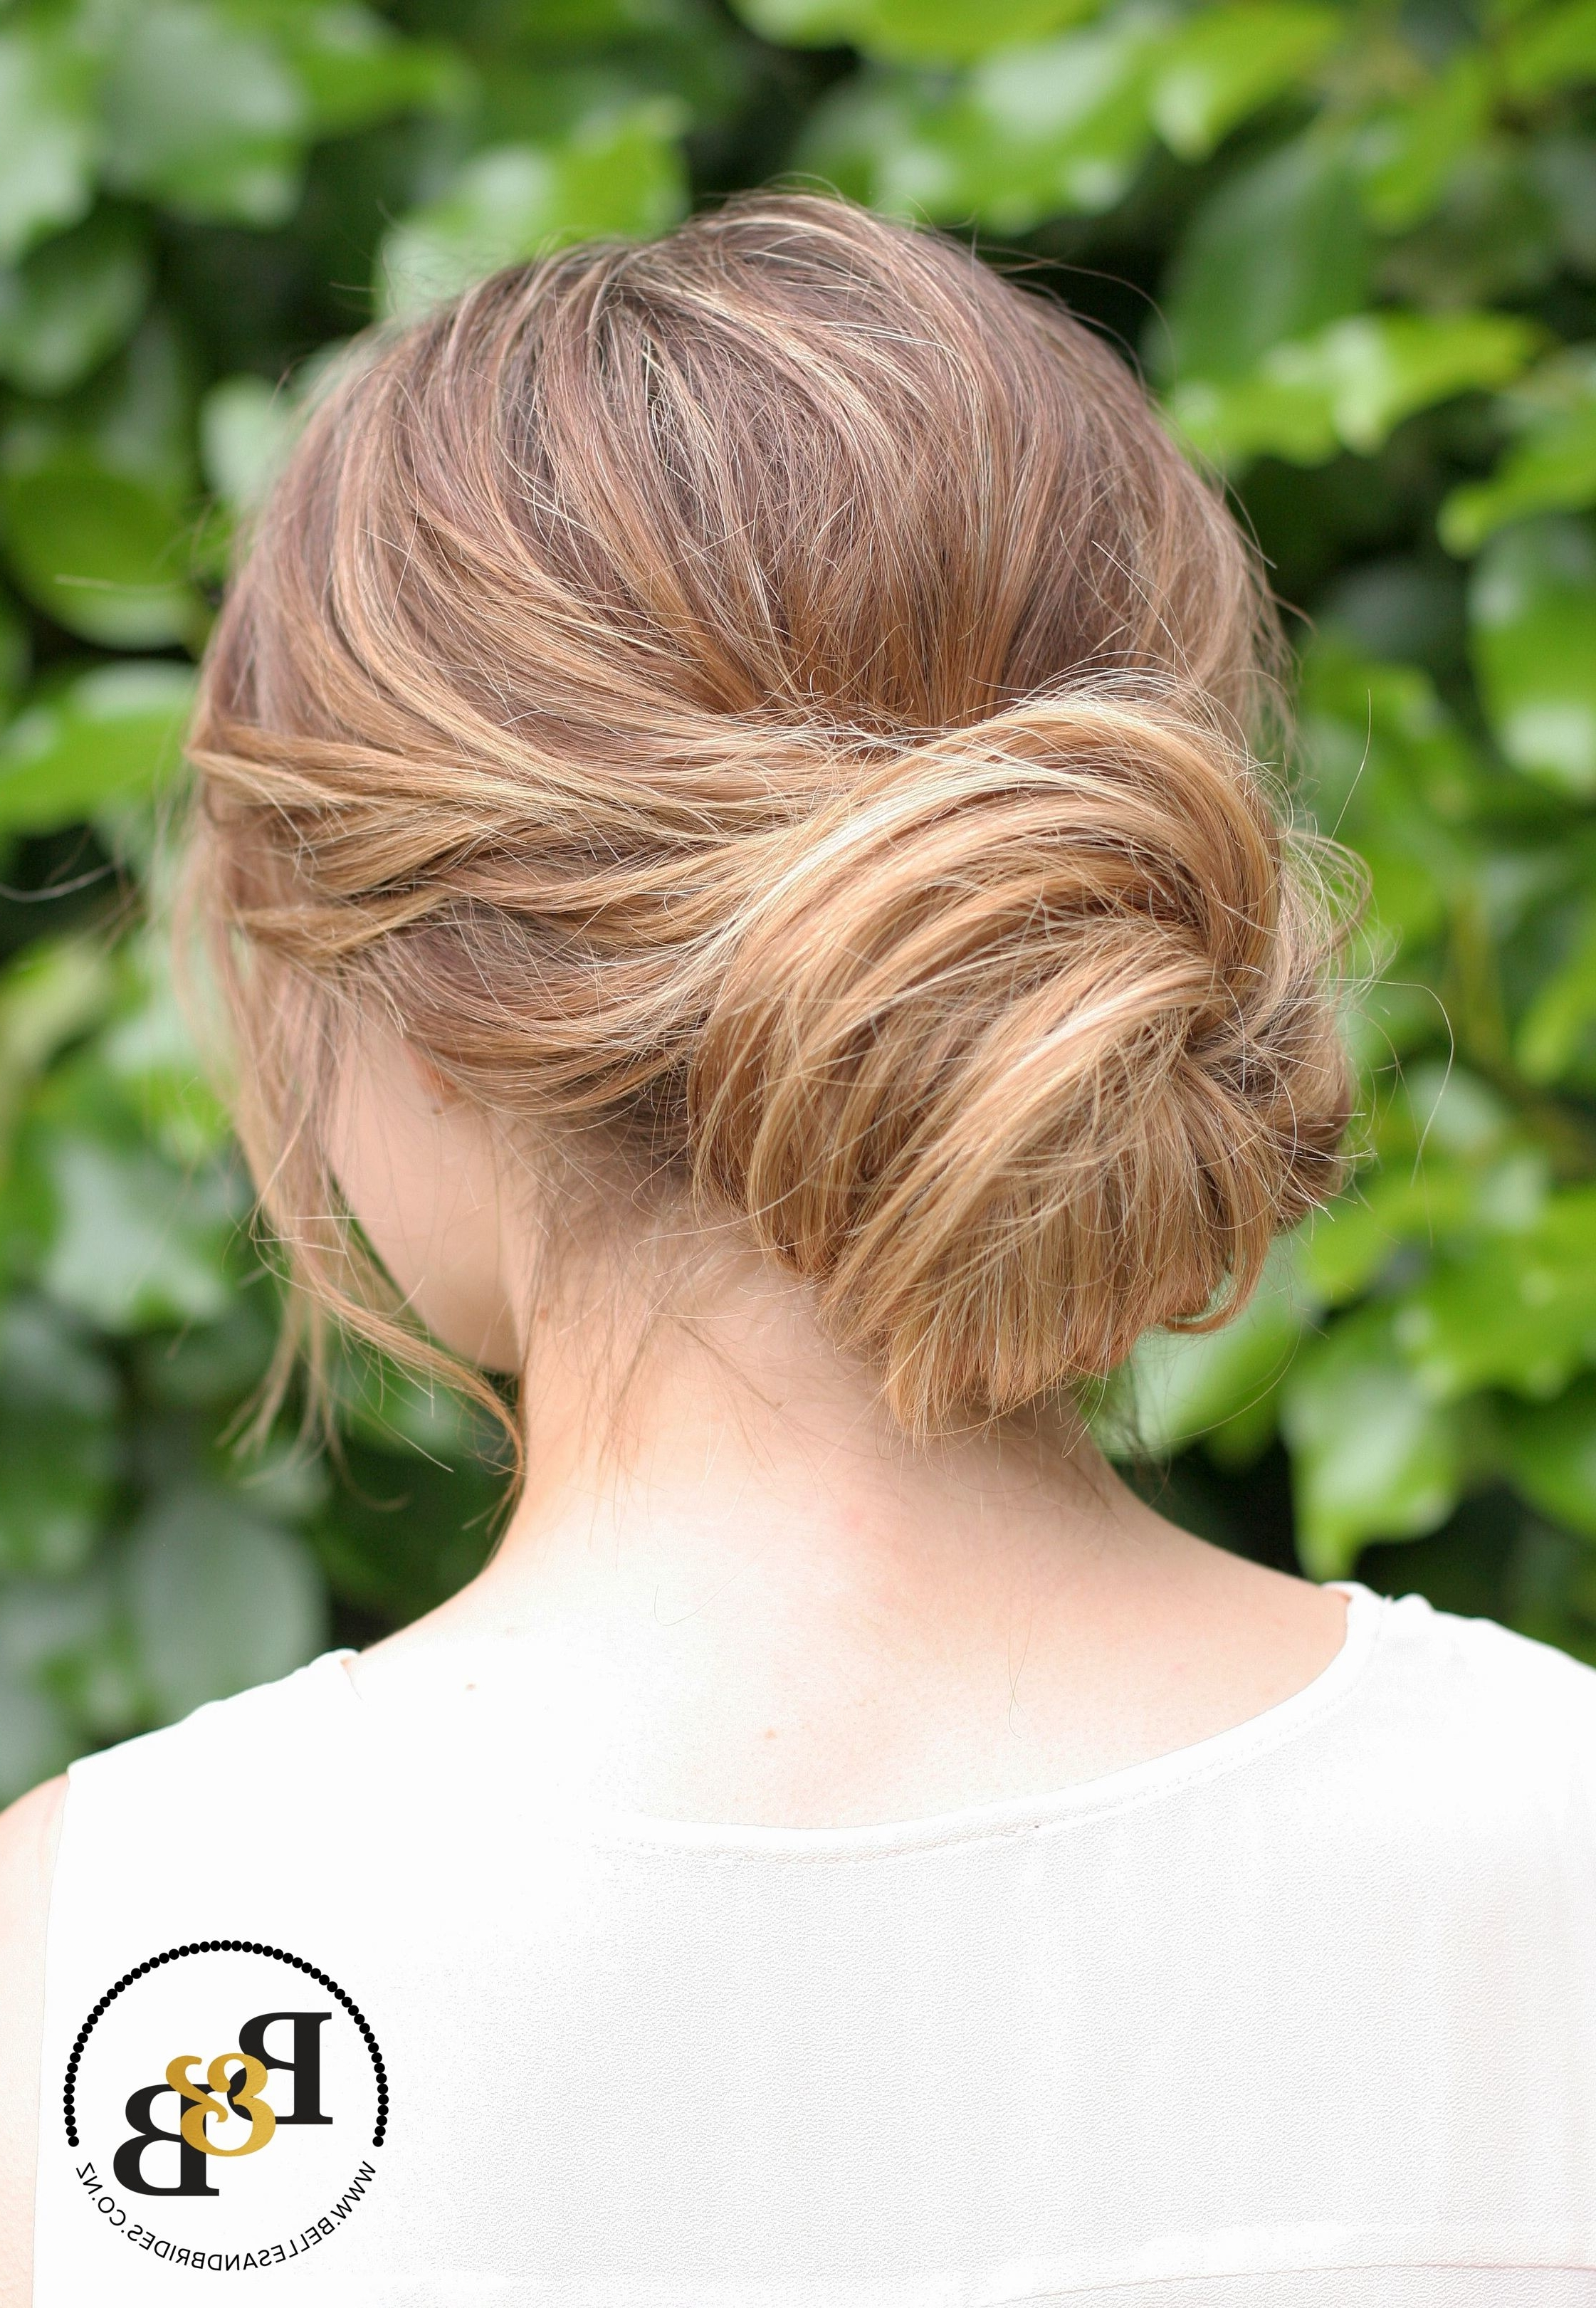 Popular Messy Updos Wedding Hairstyles Intended For Formidable Wedding Hairstyle Bun With Additional Messy Bun Messy (View 12 of 15)